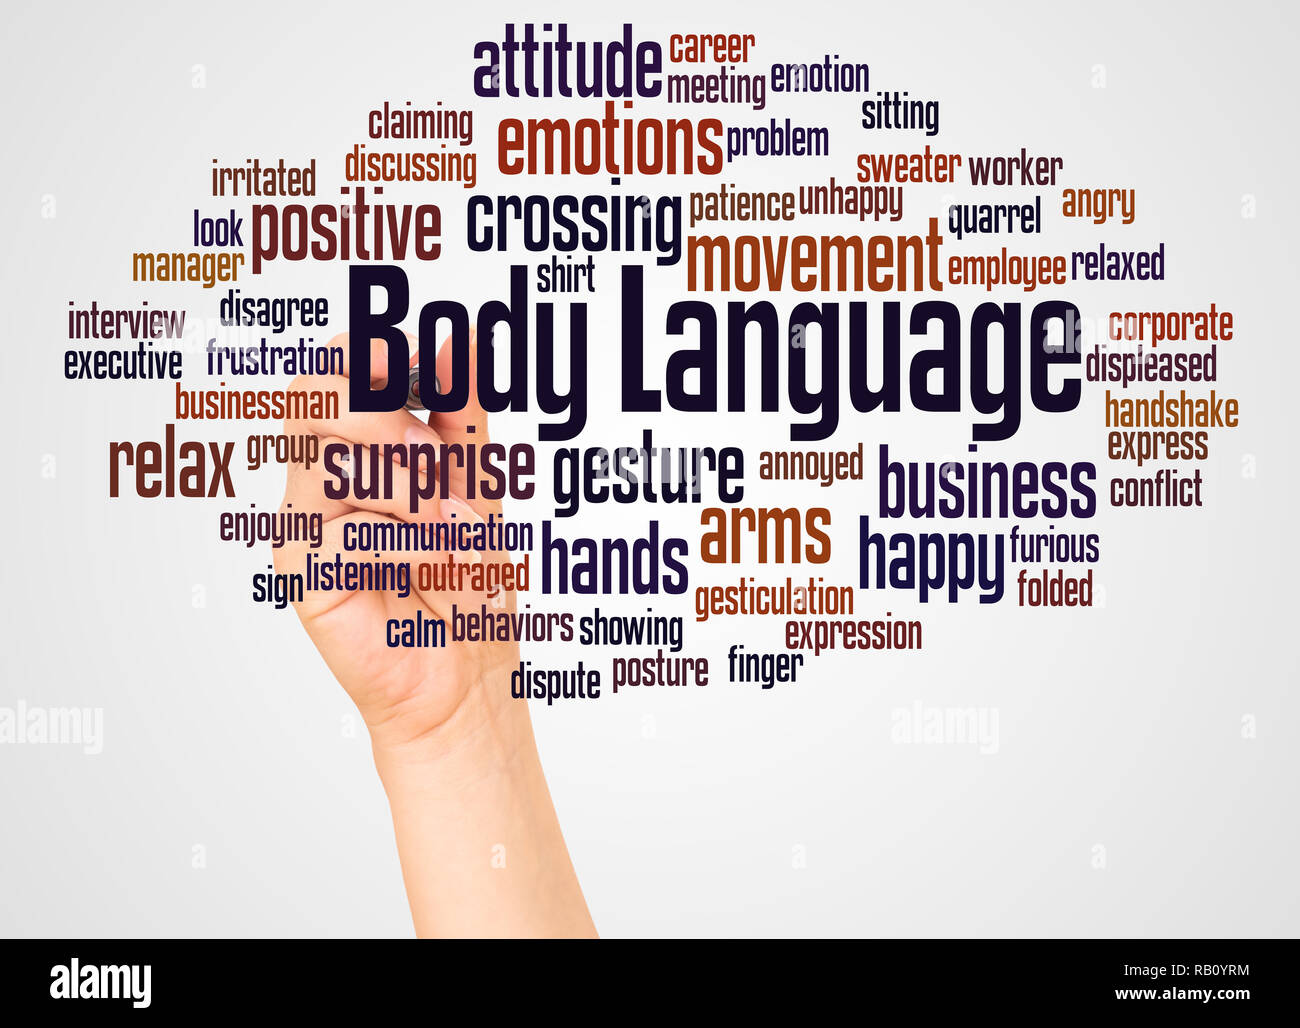 Body Language word cloud and hand with marker concept on white background. - Stock Image